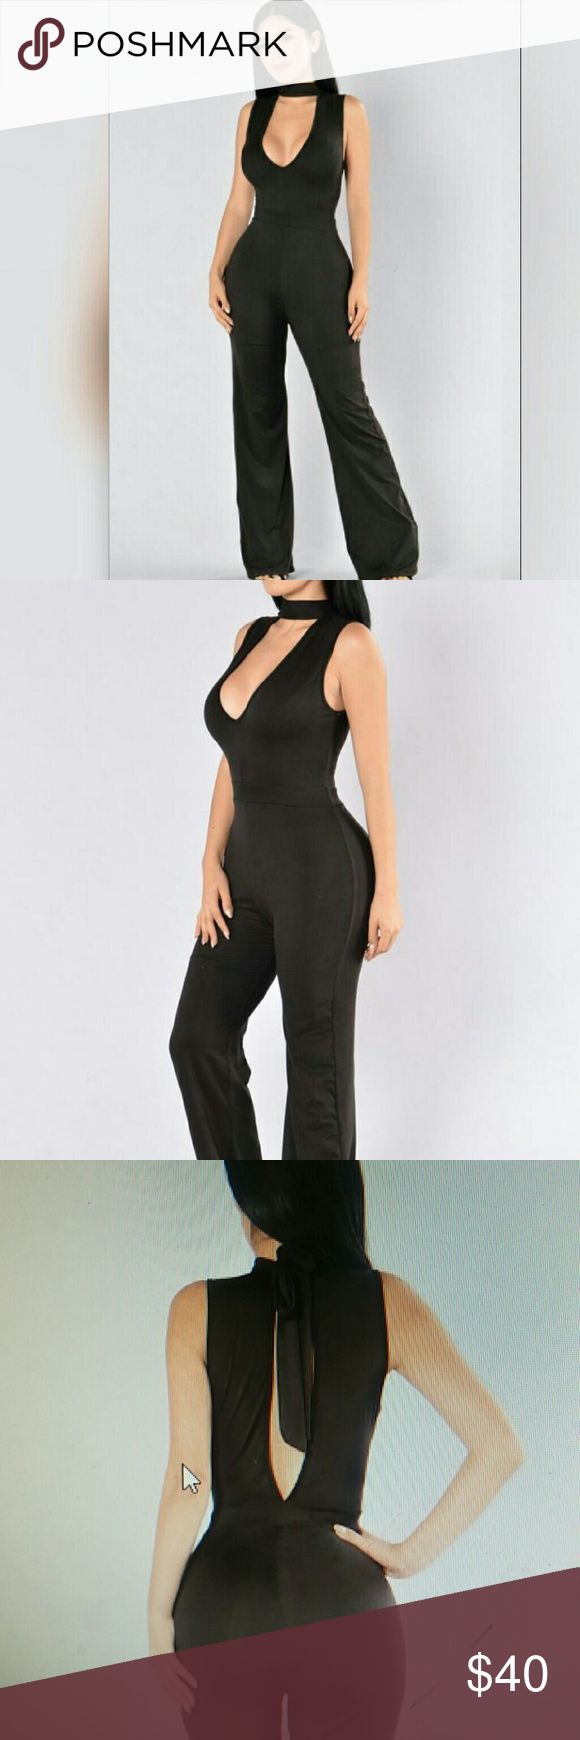 Sophisticated Lady Jumpsuit Gorgeous black jumpsuit, with a mock neckline a deep v cut and a keyhole back, gorgeous for any event. 94% polyester and 6% spandex Fashion Nova Other